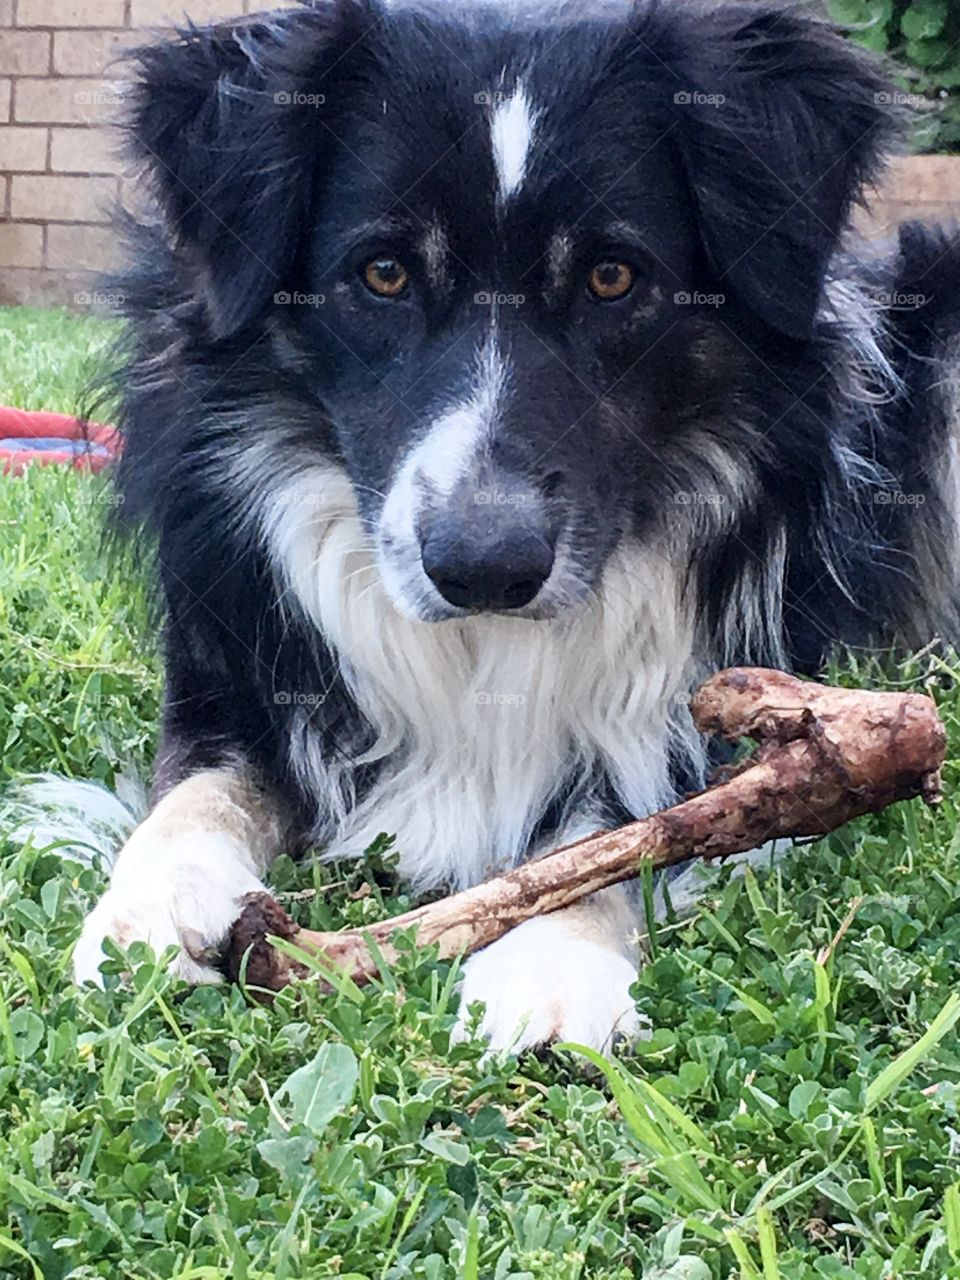 Border collie sheepdog closeup as it prepares to Munch on a dog bone